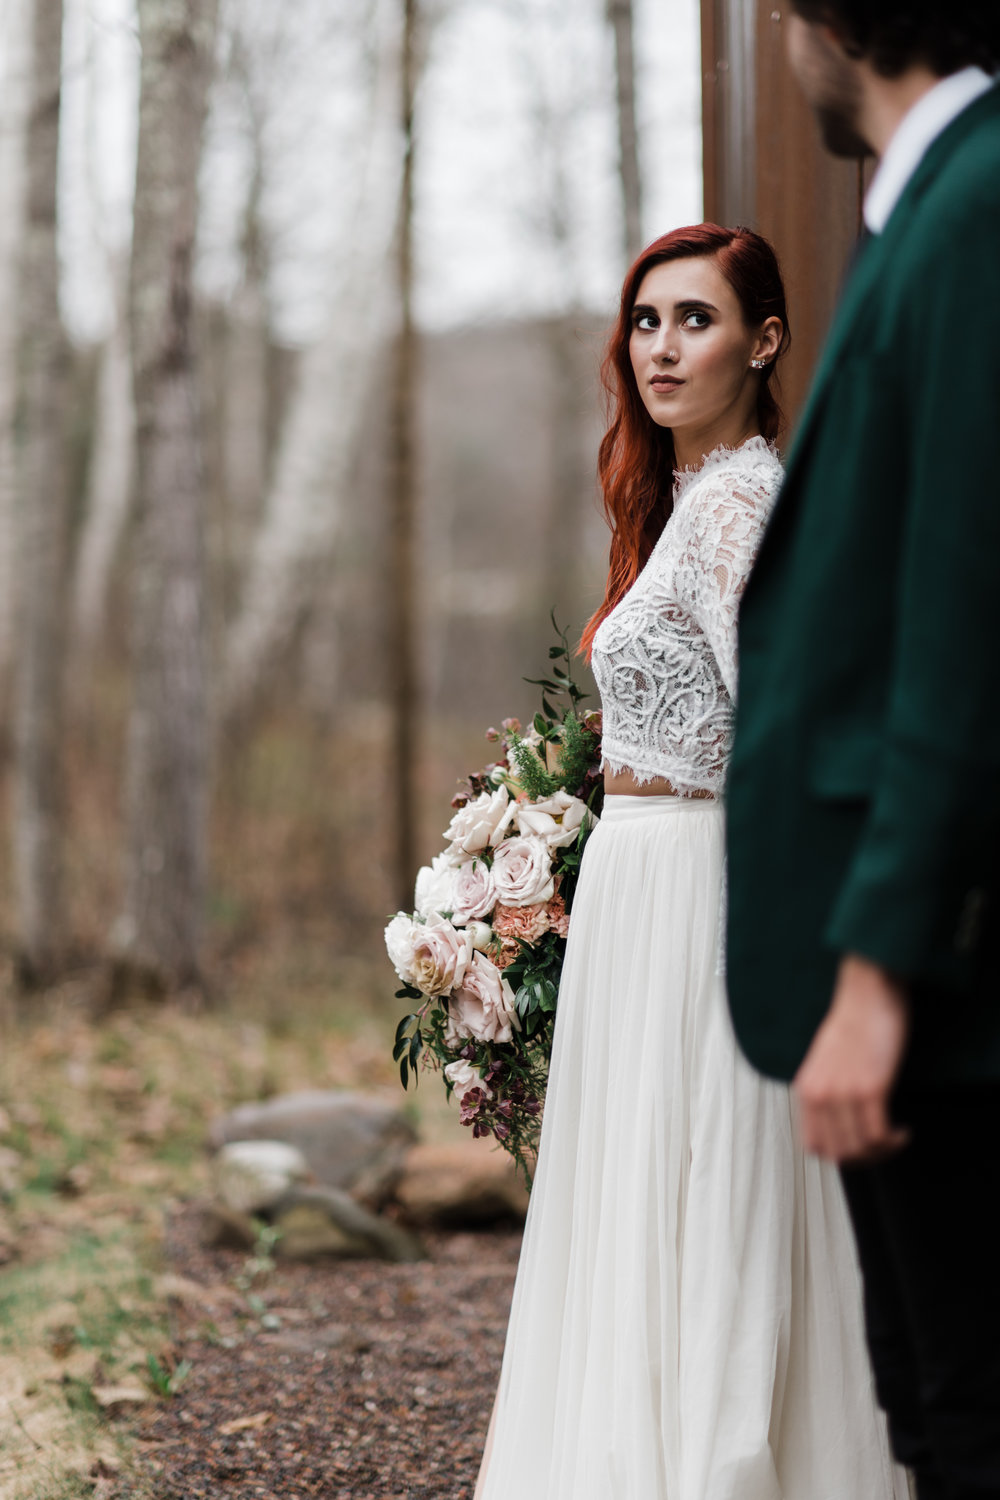 Bride in lace and beaded crop top and flowing skirt holding bouquet in one hand and groom's hand in the other.